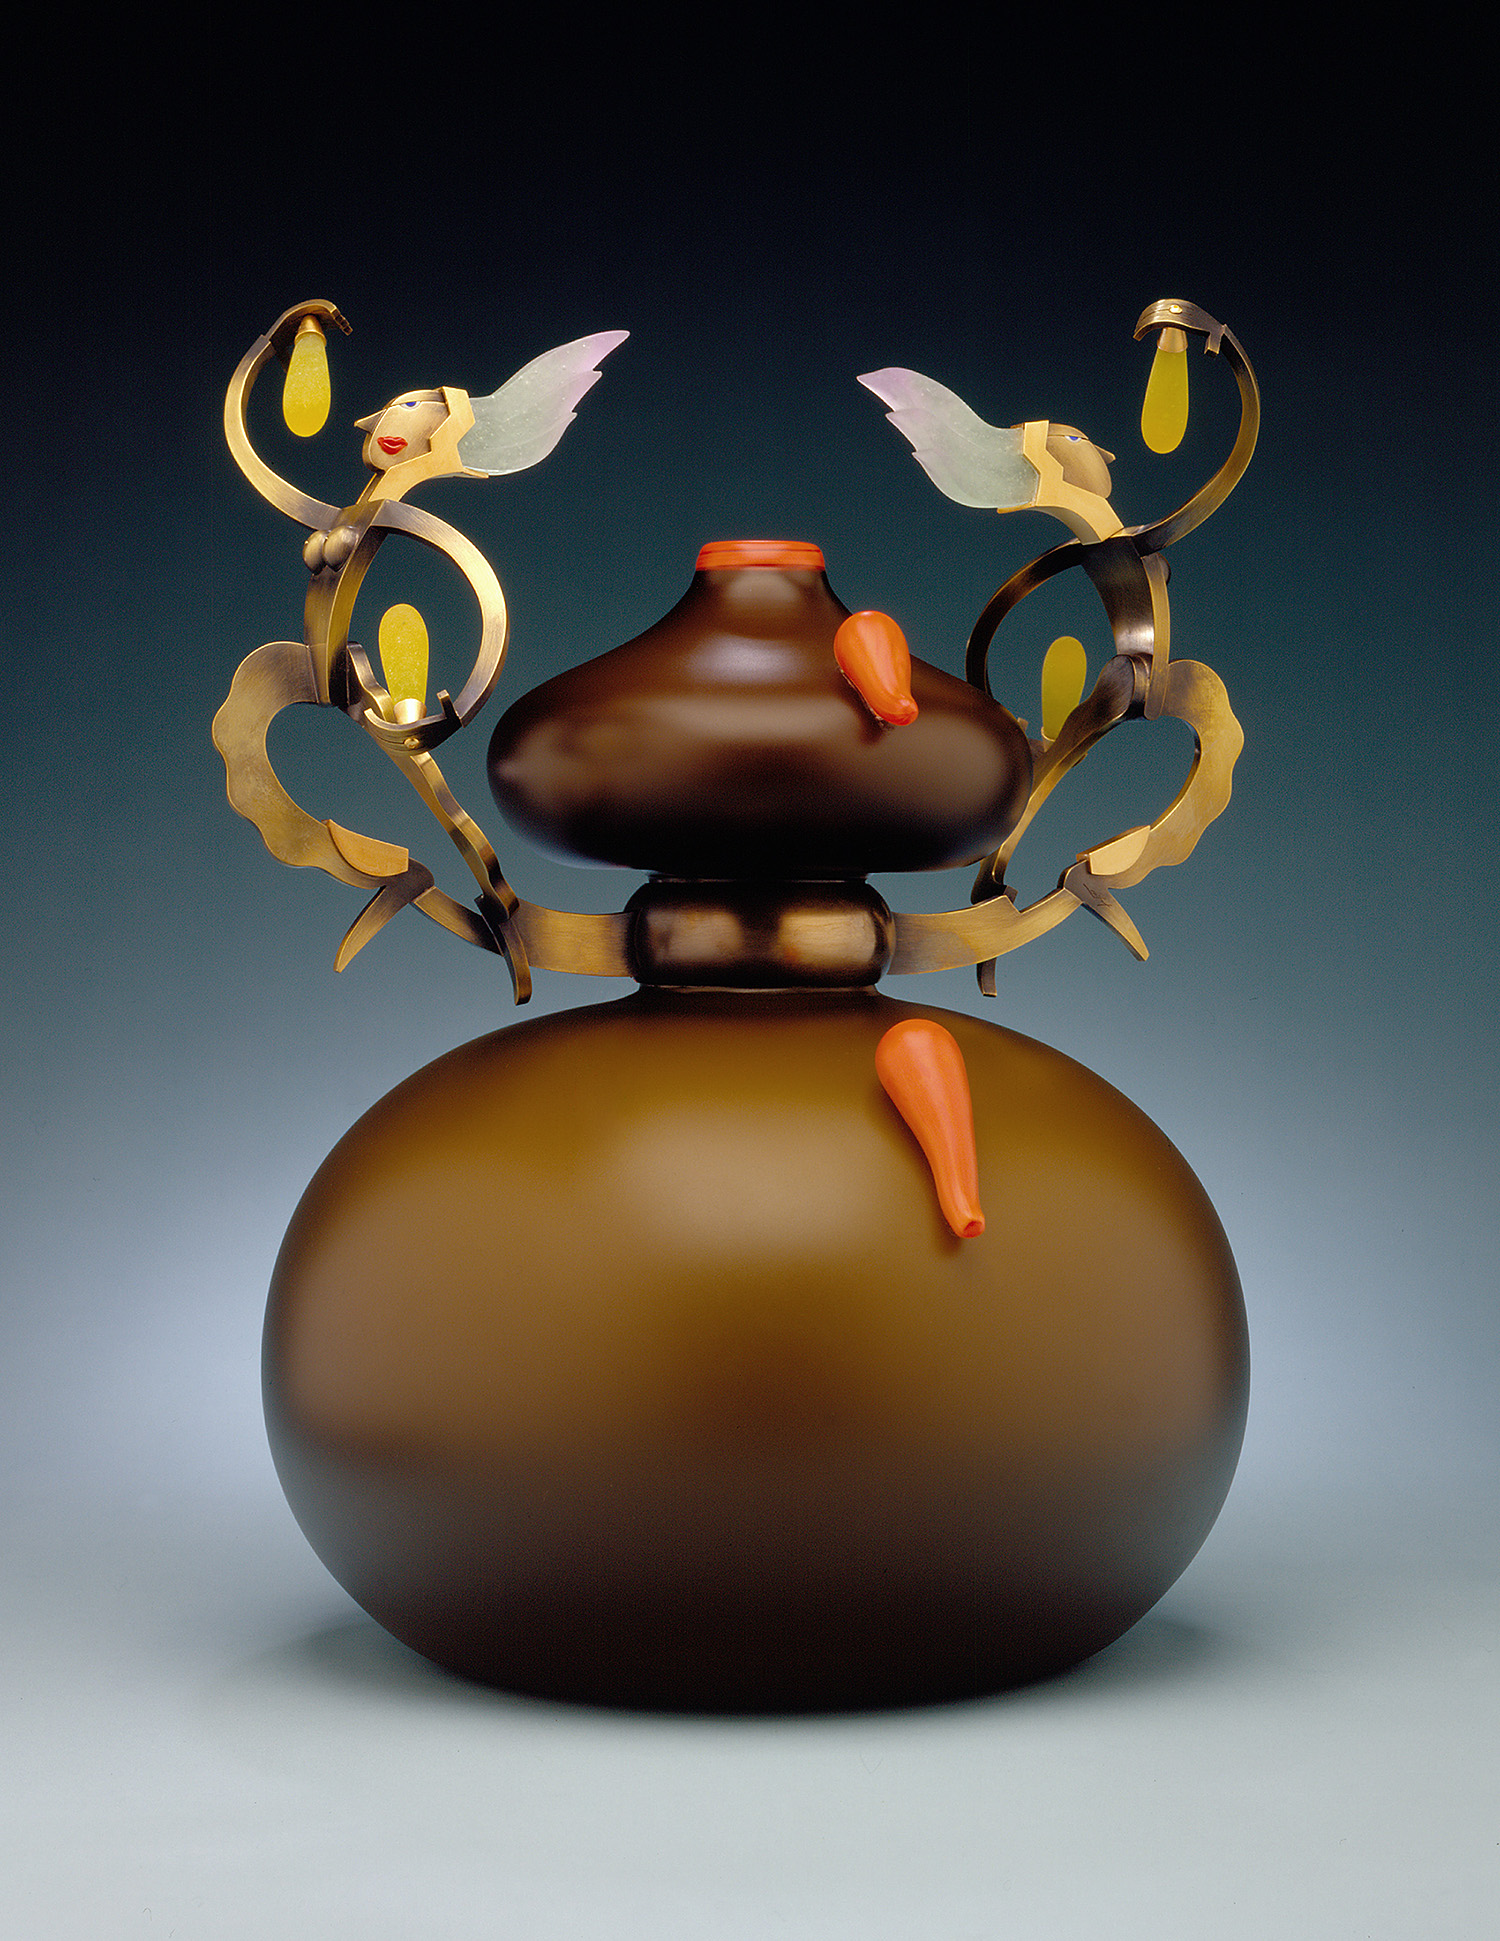 Curiosities   2000. Blown glass, nickel and gold-plated bronze, Vitrolite and pate de verre. 16 x 11½ x11½""